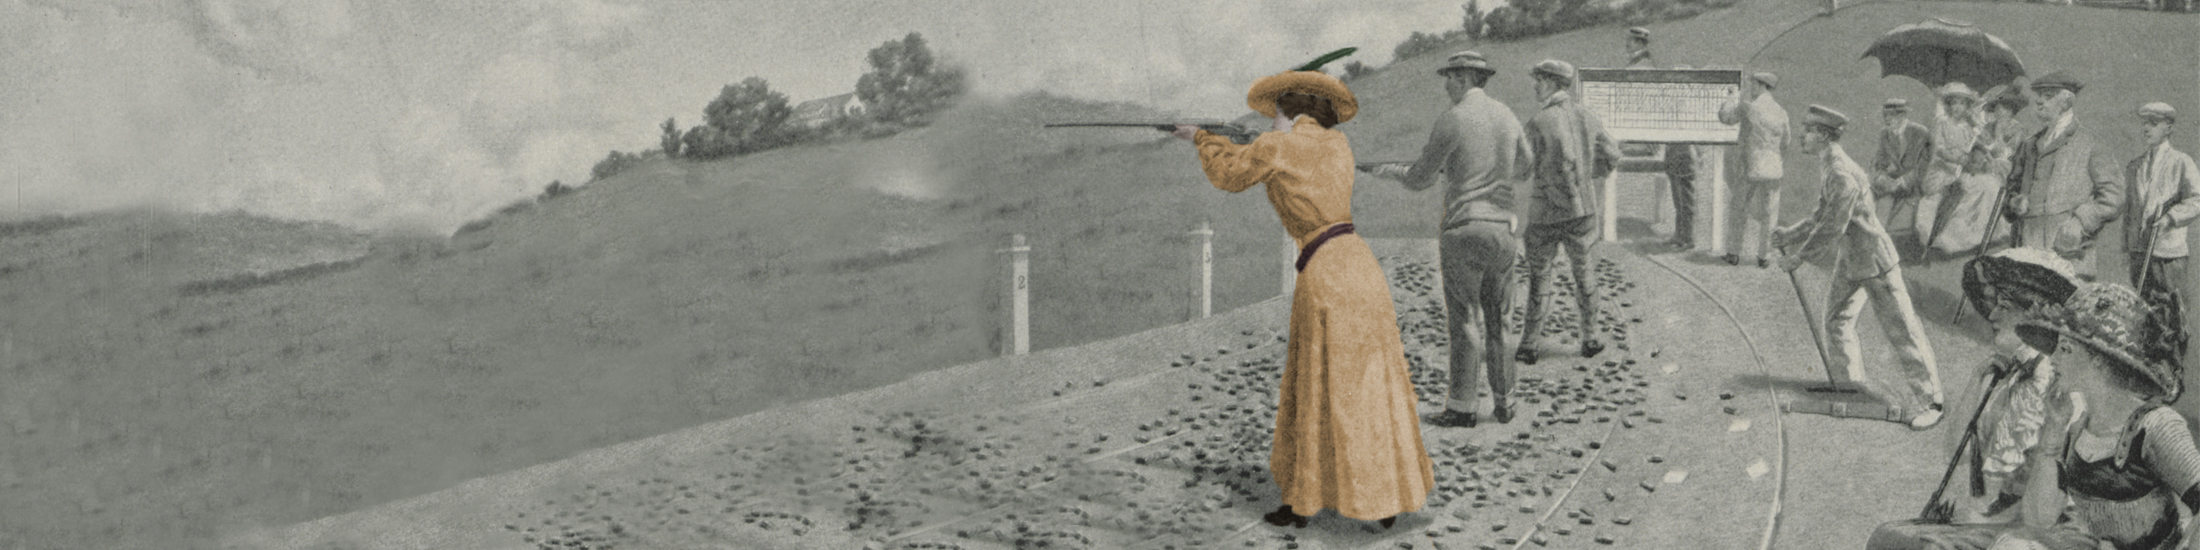 A clay shooting club in black and white with a colorized women shooting at the center.